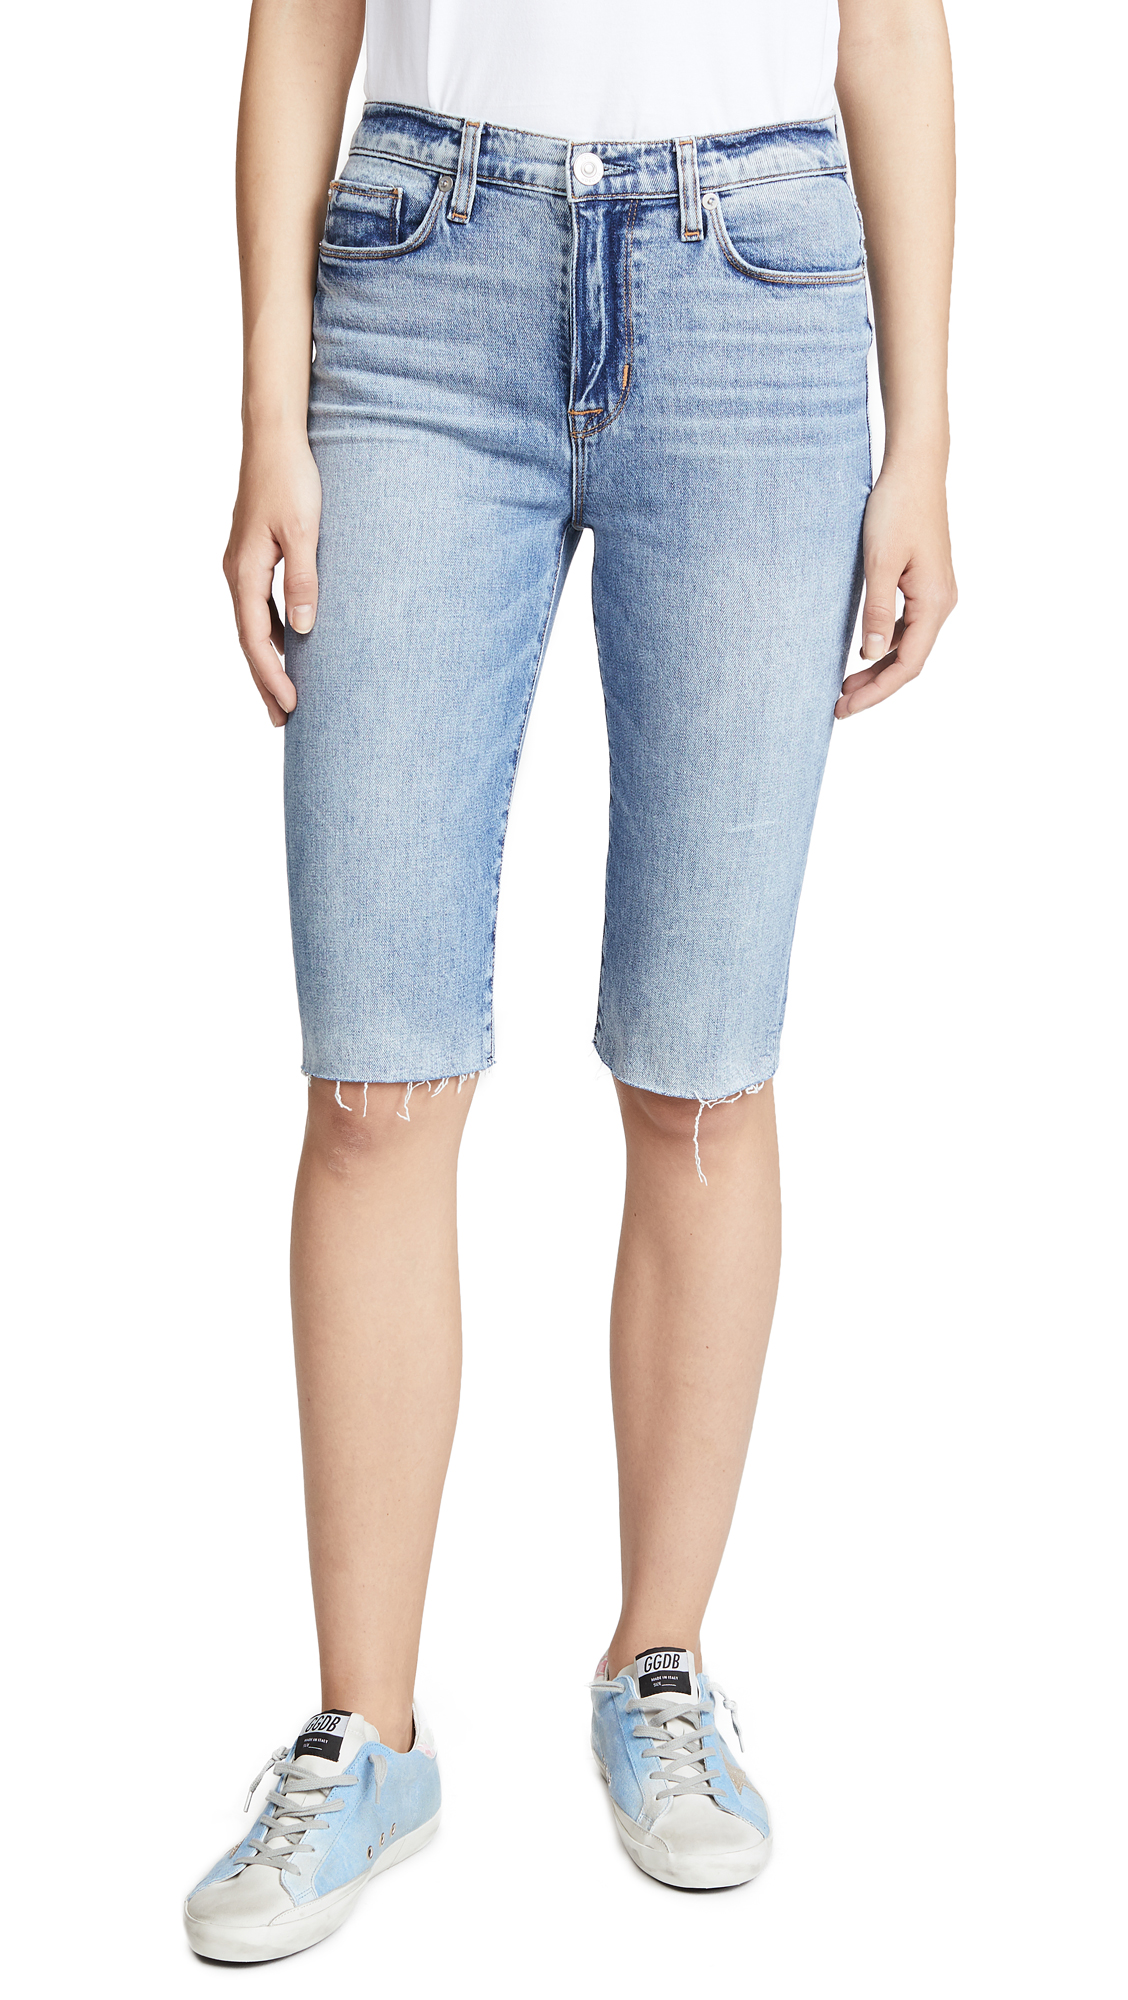 Hudson Zoeey Cutoff Boyfriend Shorts In Just For Kicks